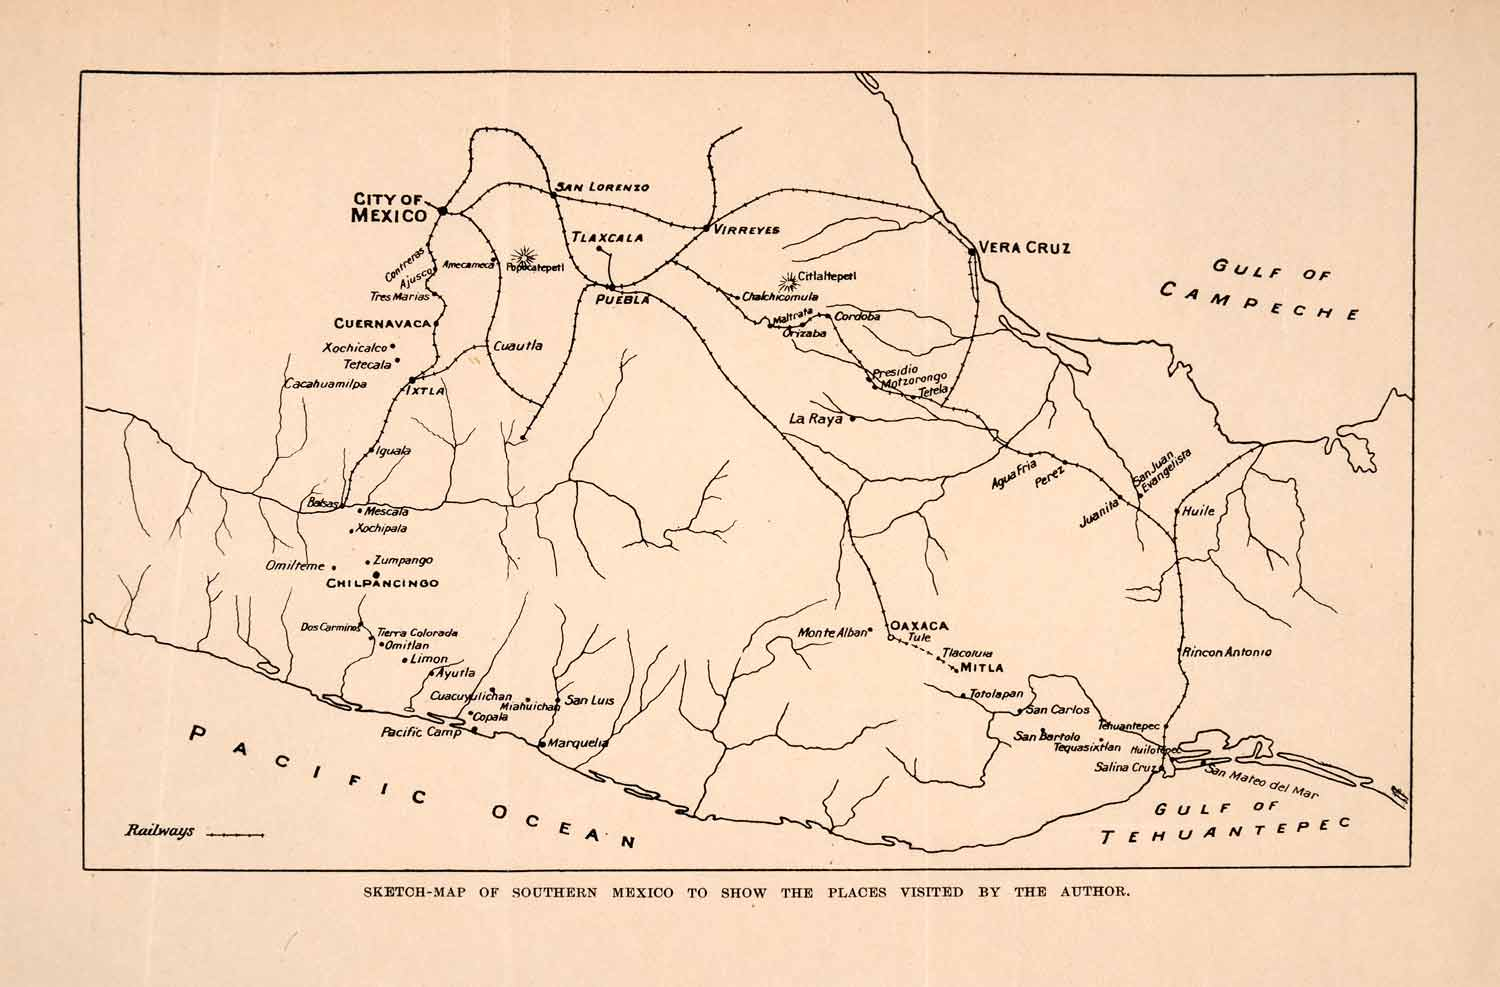 1908 Lithograph Sketch Map Southern Mexico Mountains Rivers Cities Water  XGMA7